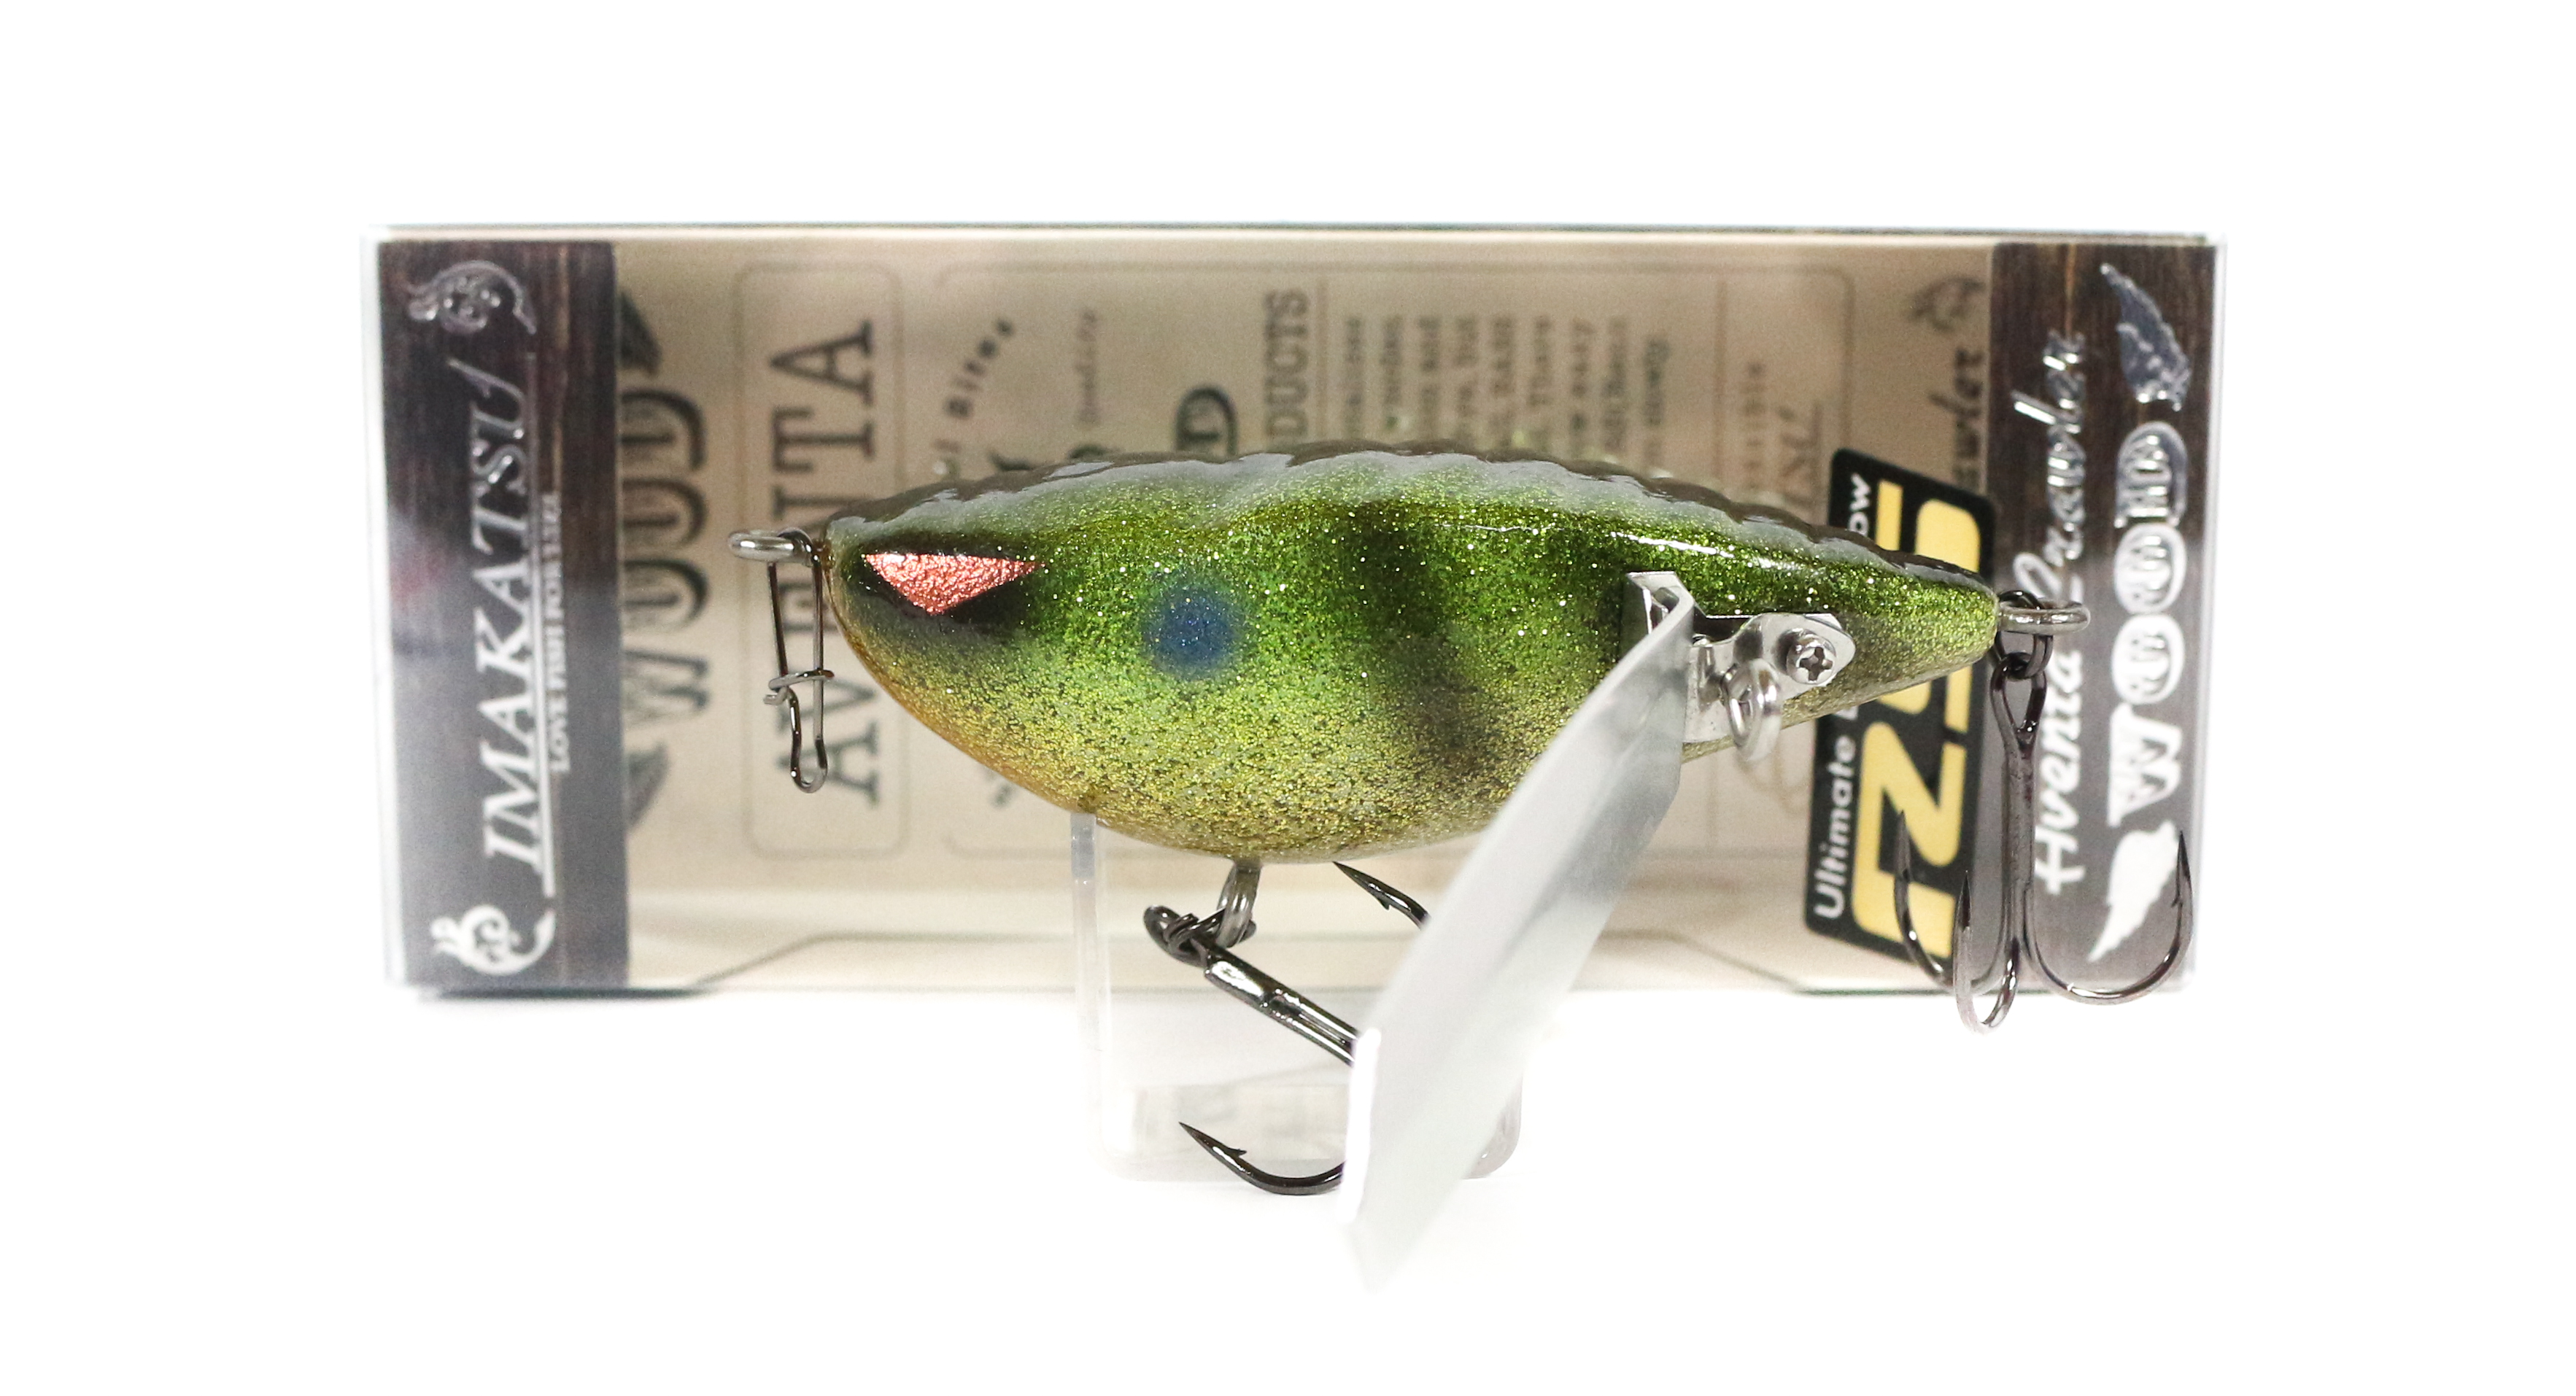 Sale Imakatsu Aventa Crawler Topwater Floating Lure RS AC-28 (7827)